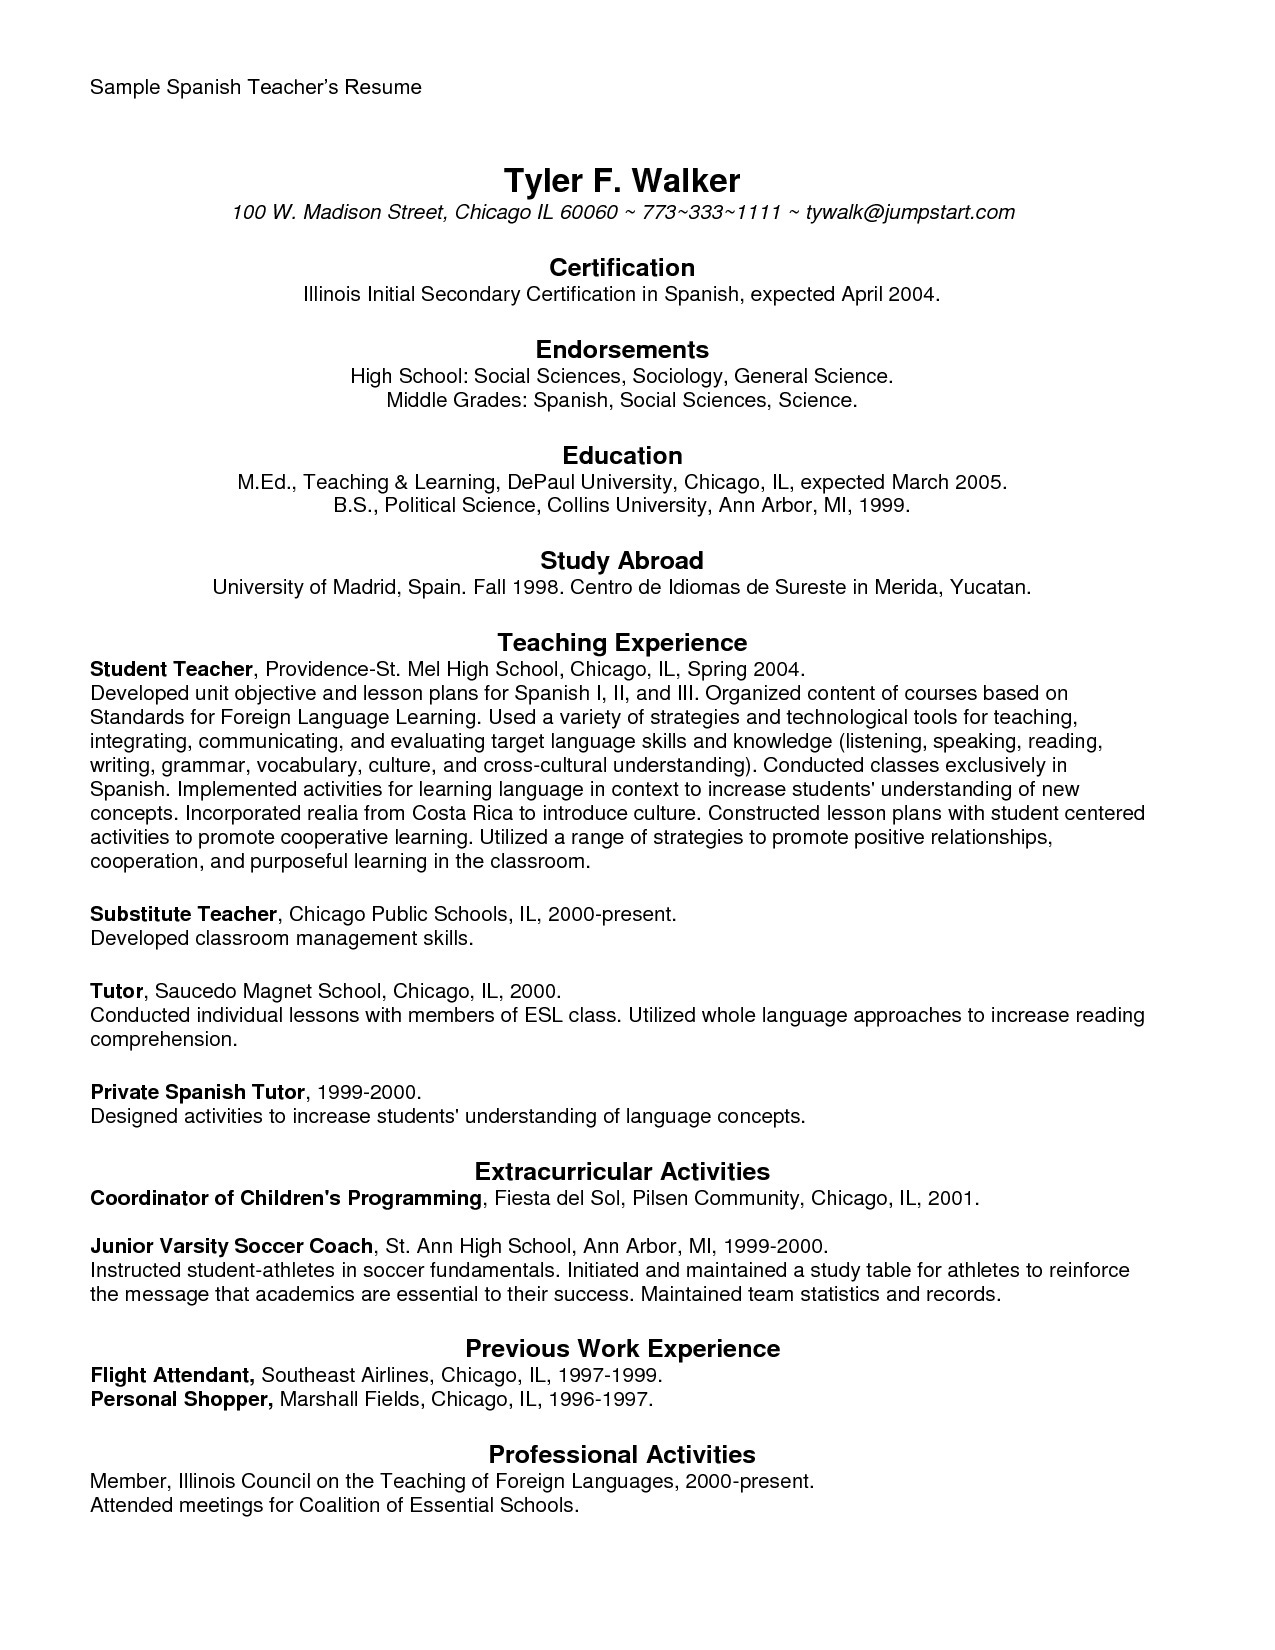 Resume Templates In Spanish Resume Resumetemplates Spanish